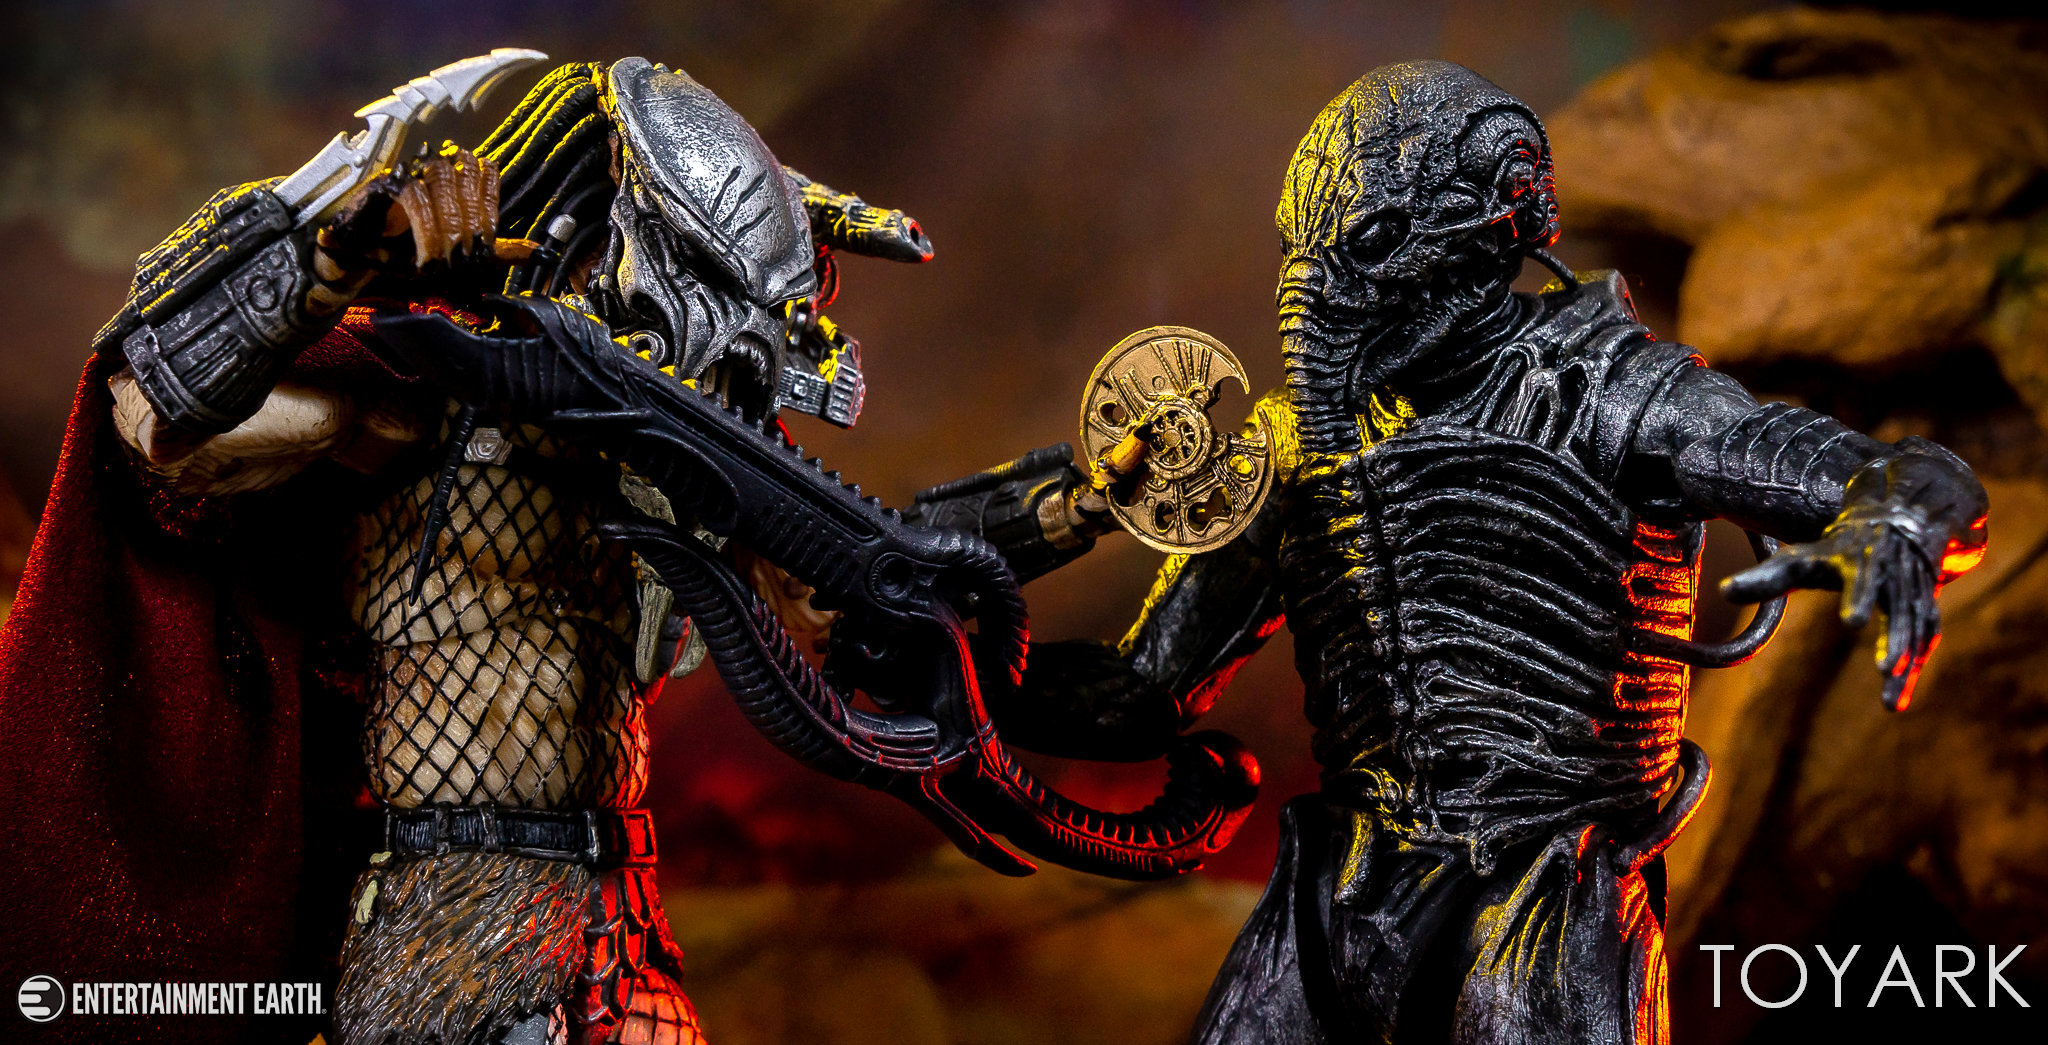 https://news.toyark.com/wp-content/uploads/sites/4/2018/11/NECA-Ultimate-Ahab-Predator-063.jpg